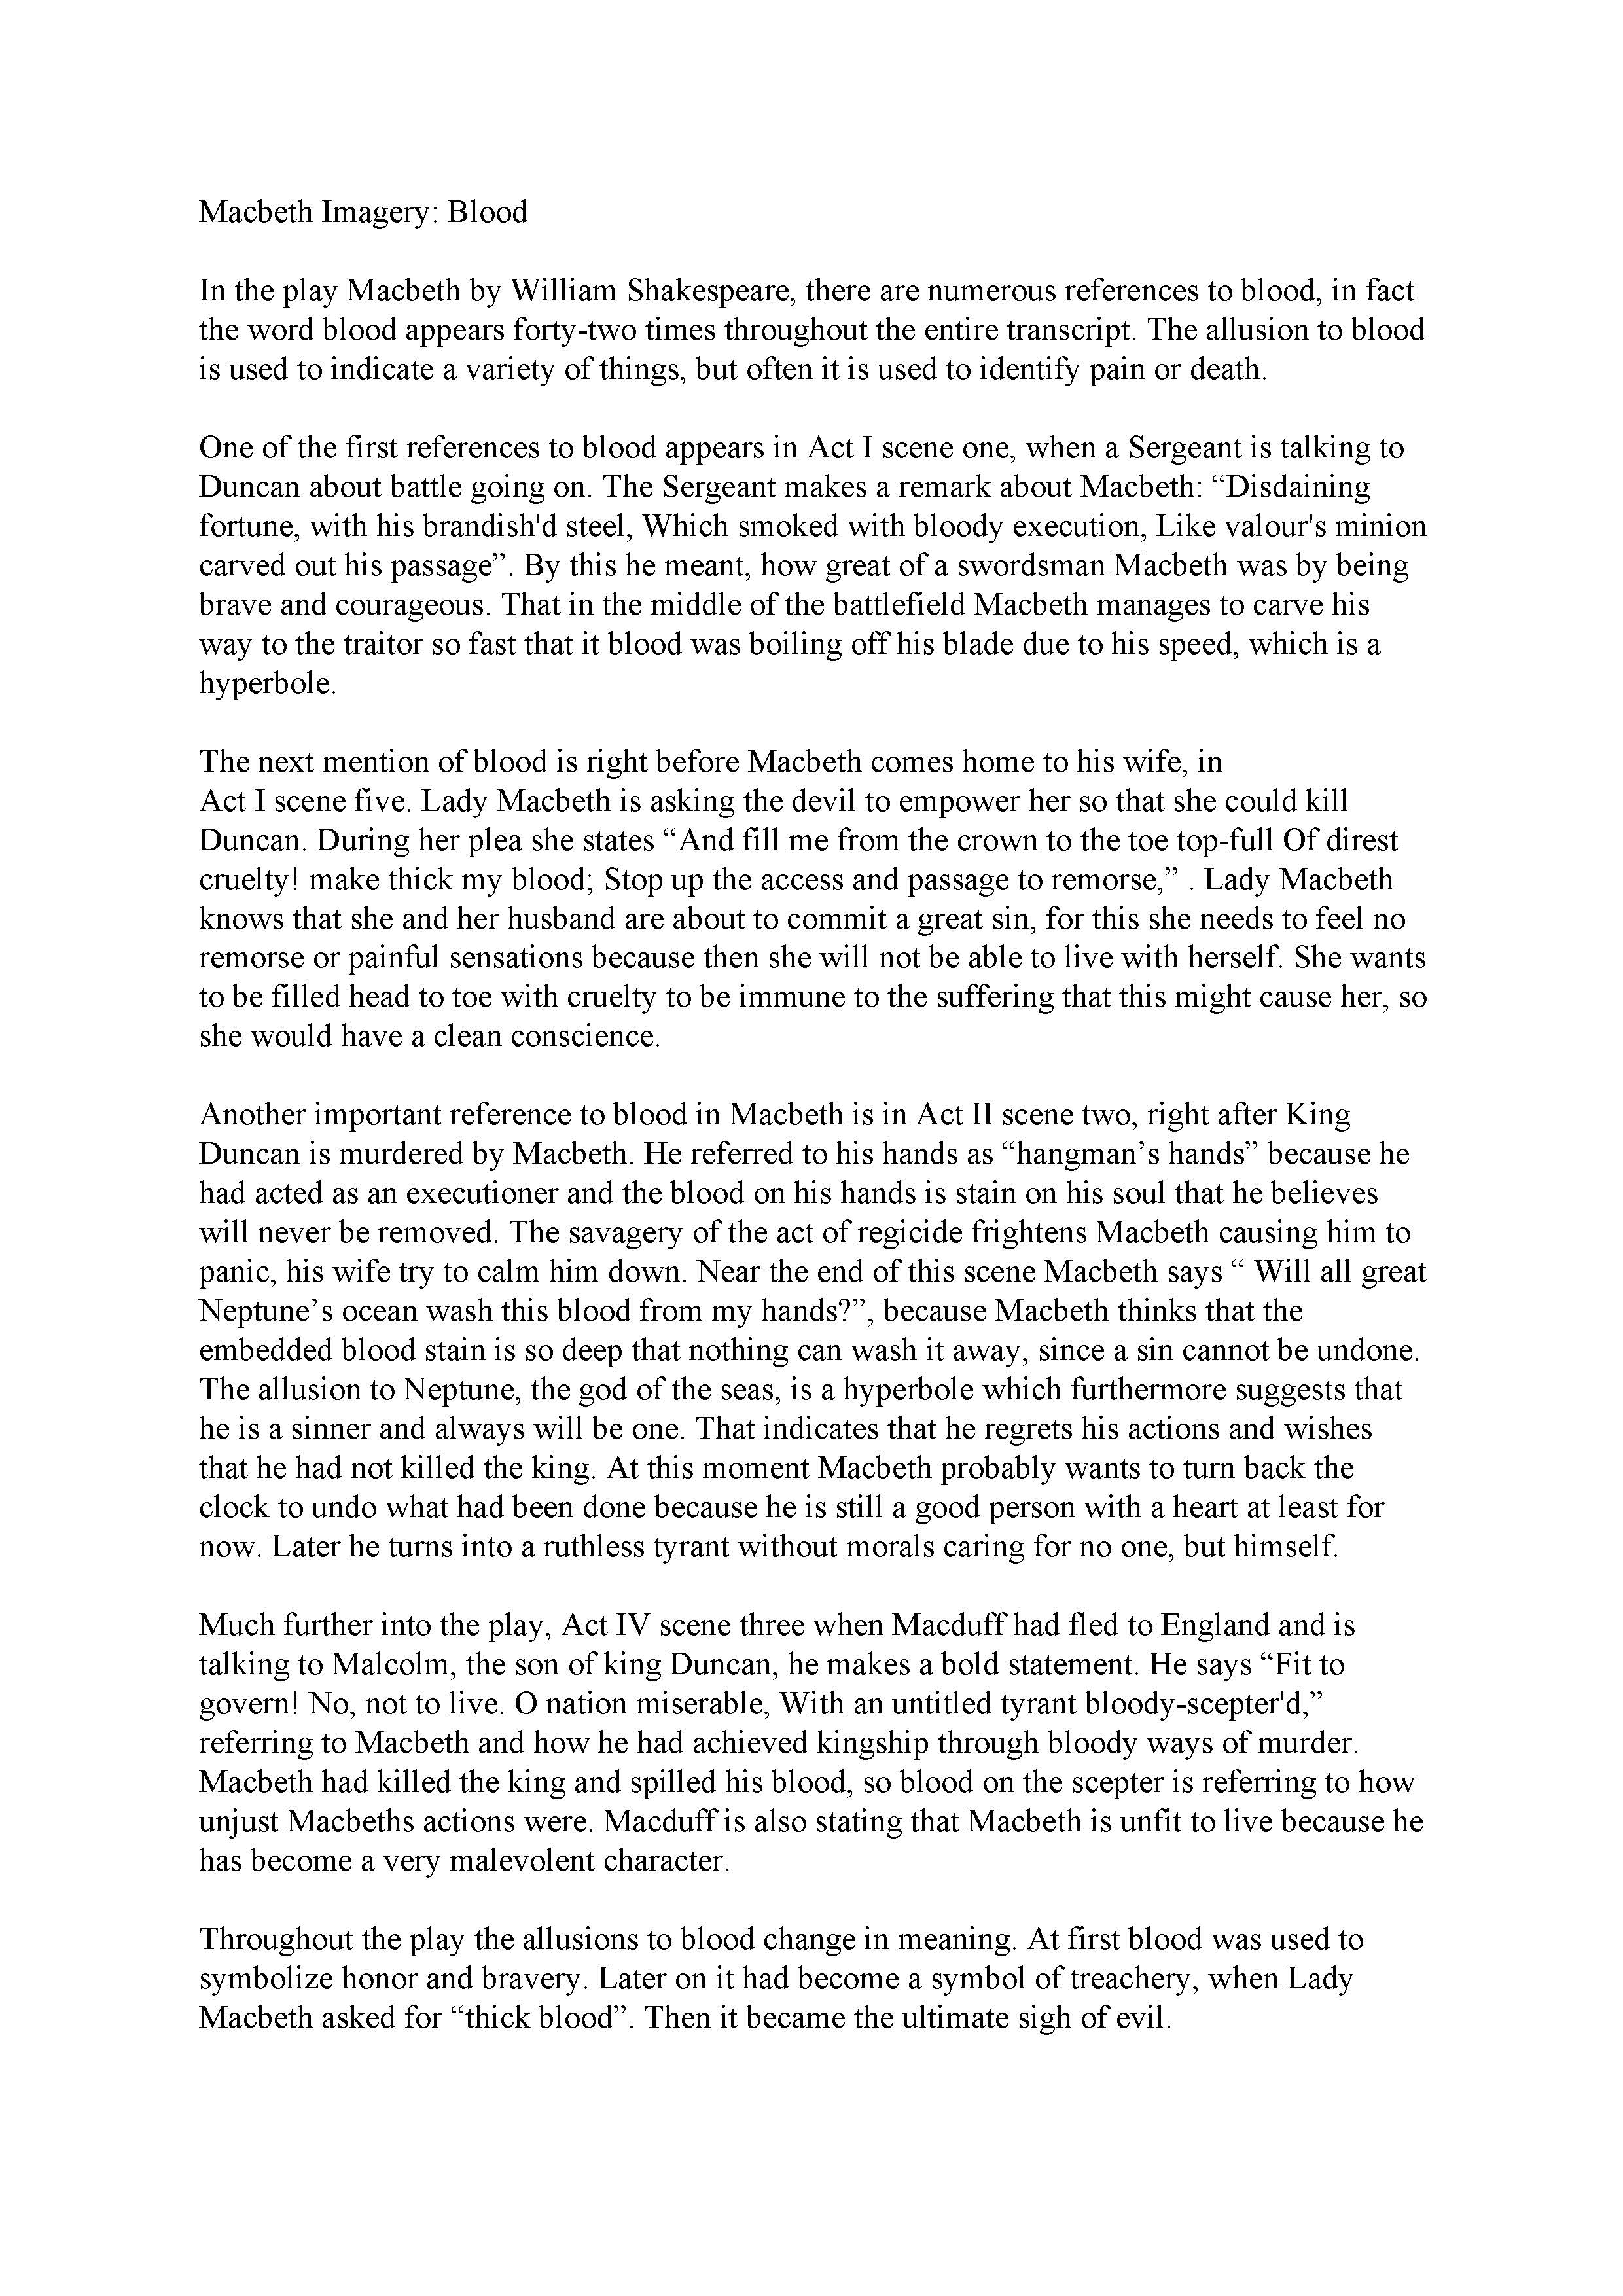 001 Essay On Macbeth Example Marvelous And Lady Macbeth's Relationship Literary As A Tragic Hero Plan Full